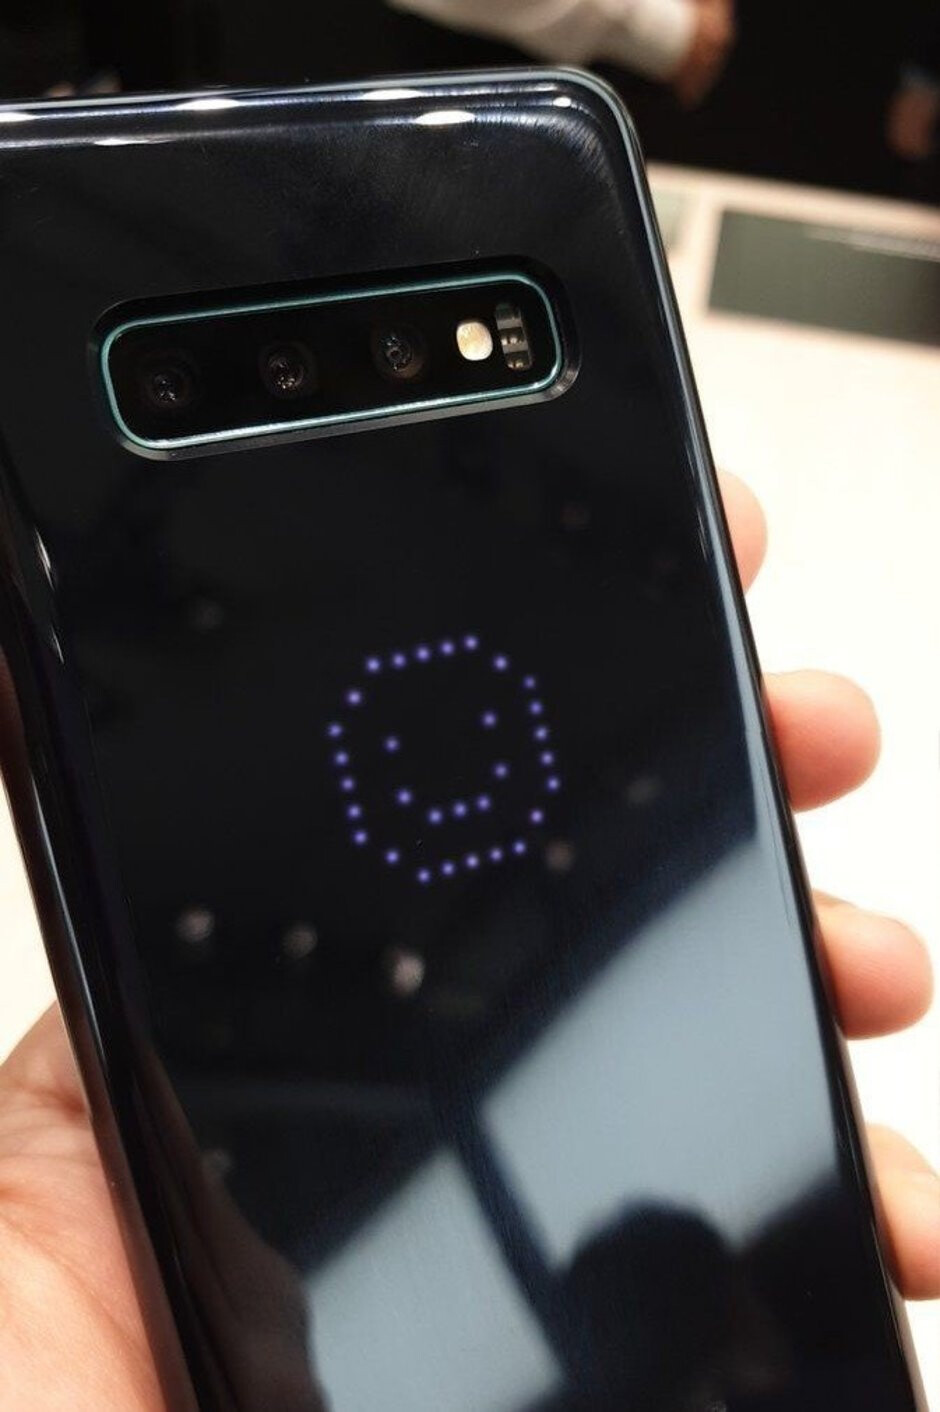 The future is here! - The Galaxy S10's fancy LED case disables the phone's NFC